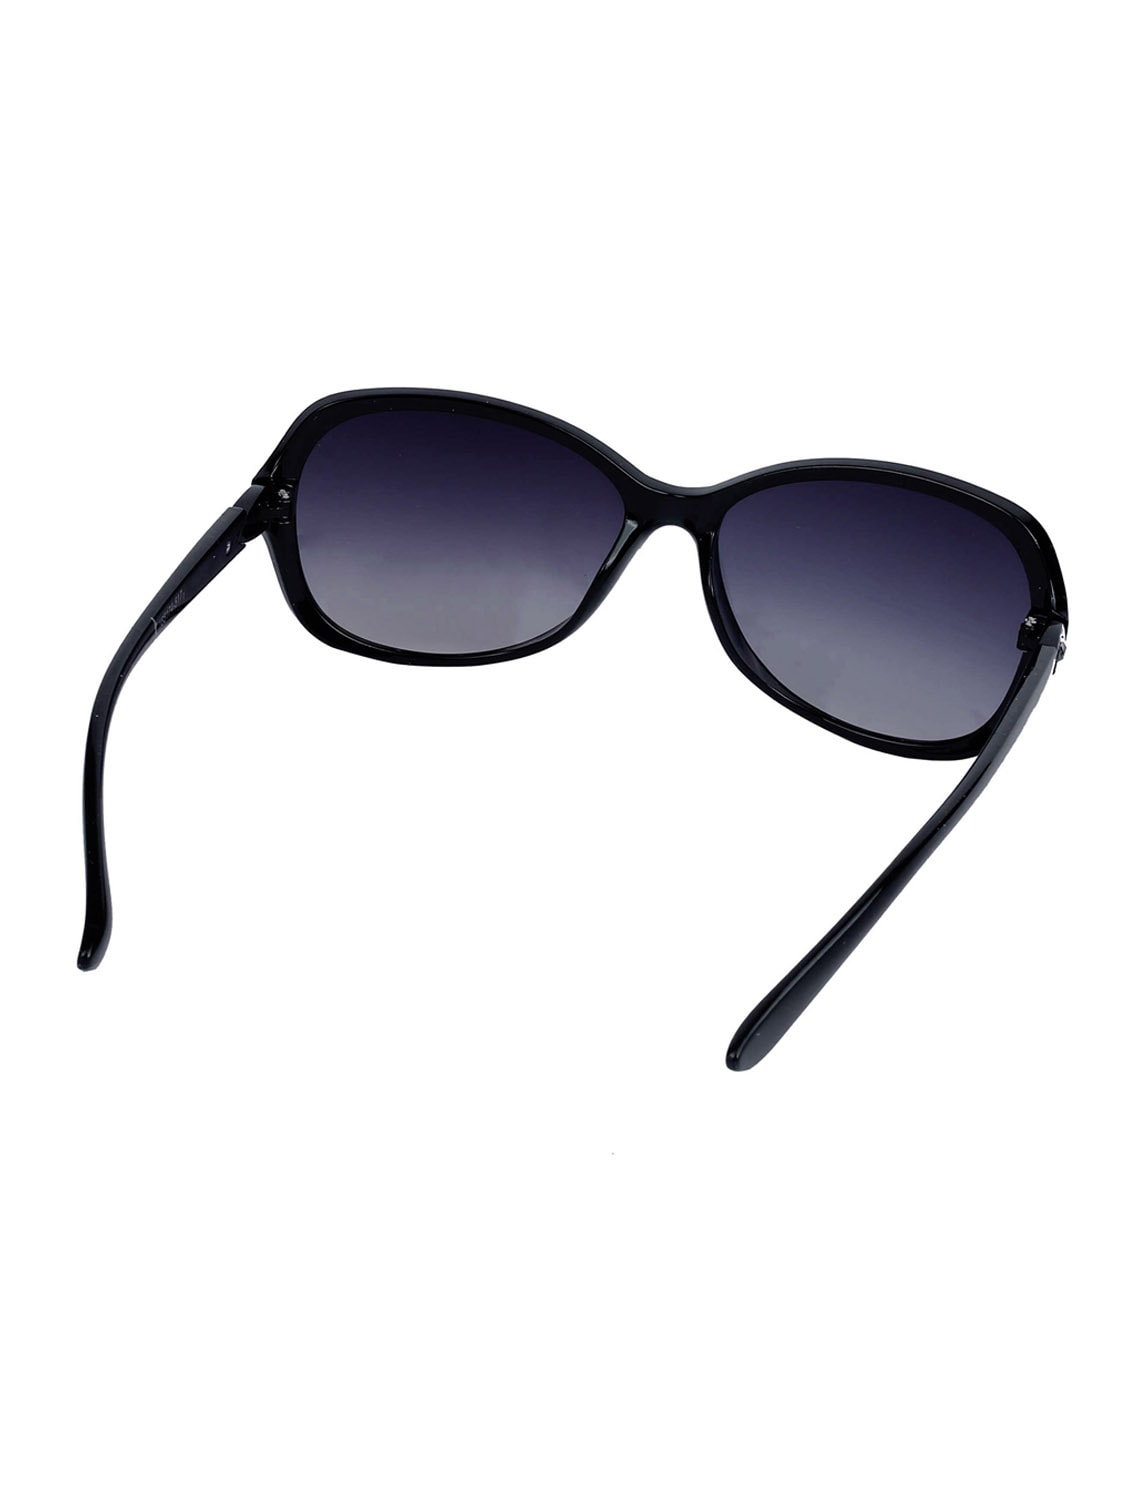 51c87388acf Buy Uv Protected Wrap Around Sunglasses by Hawai - Online shopping for  Sunglasses in India